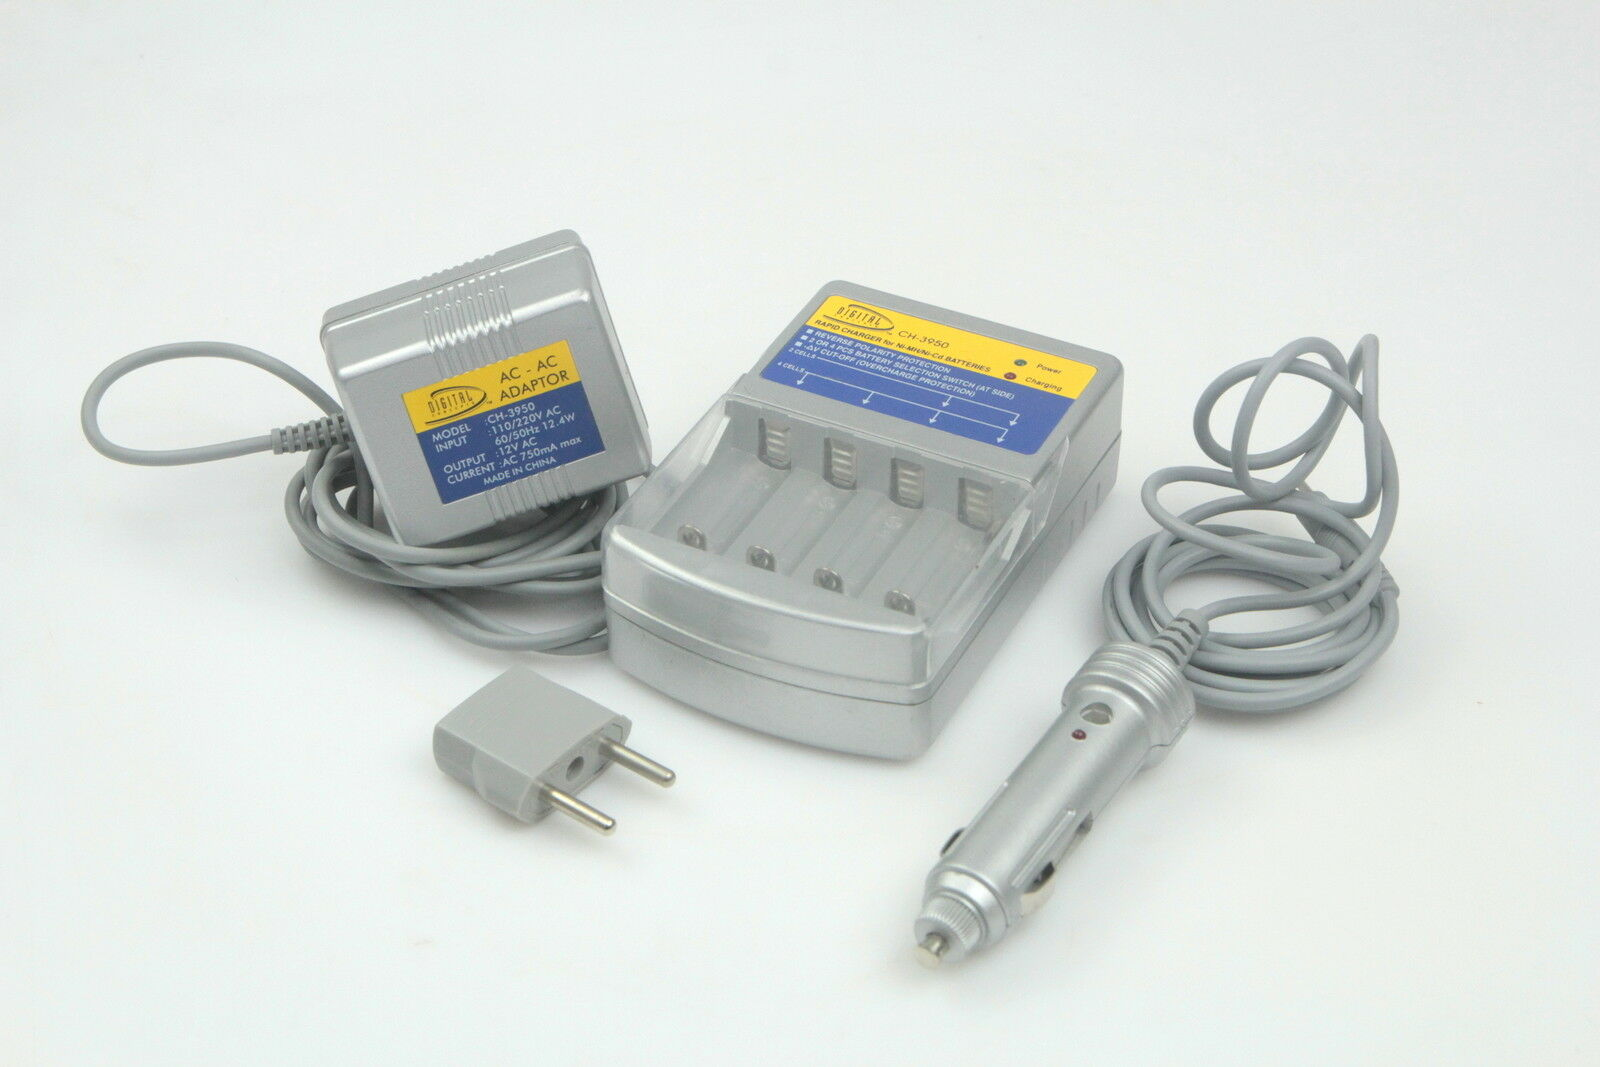 DIGITAL CONCEPTS CH-3950 RAPID CHARGER For NI-MH/NI-CD BATTERIES